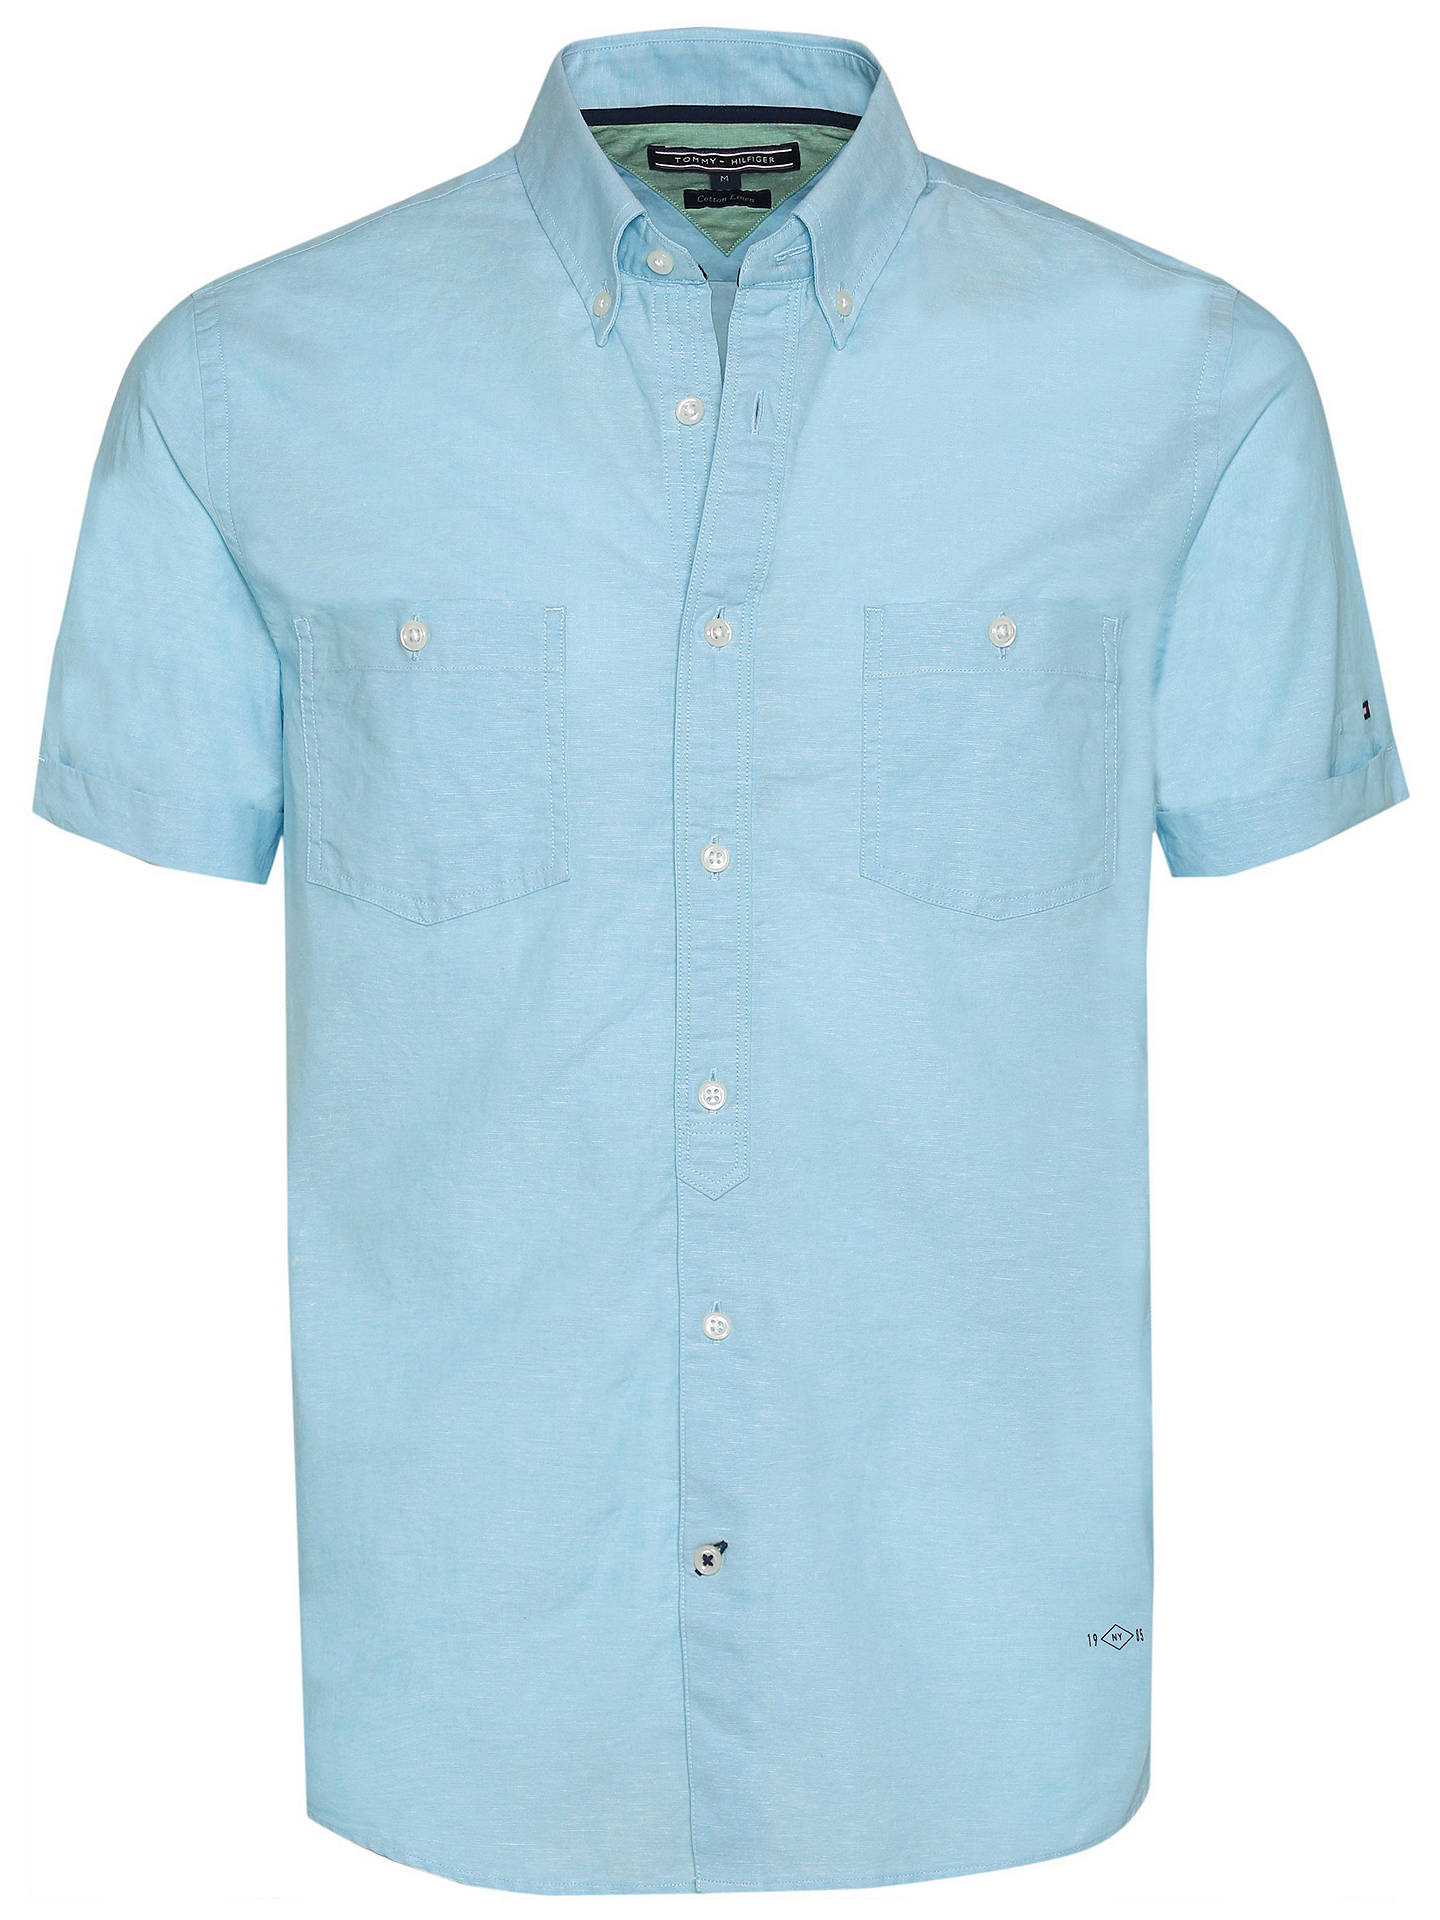 c44dfcb6 Buy Tommy Hilfiger Slim Fit Chambray Cotton-Linen Shirt, Blue Atoll, S  Online